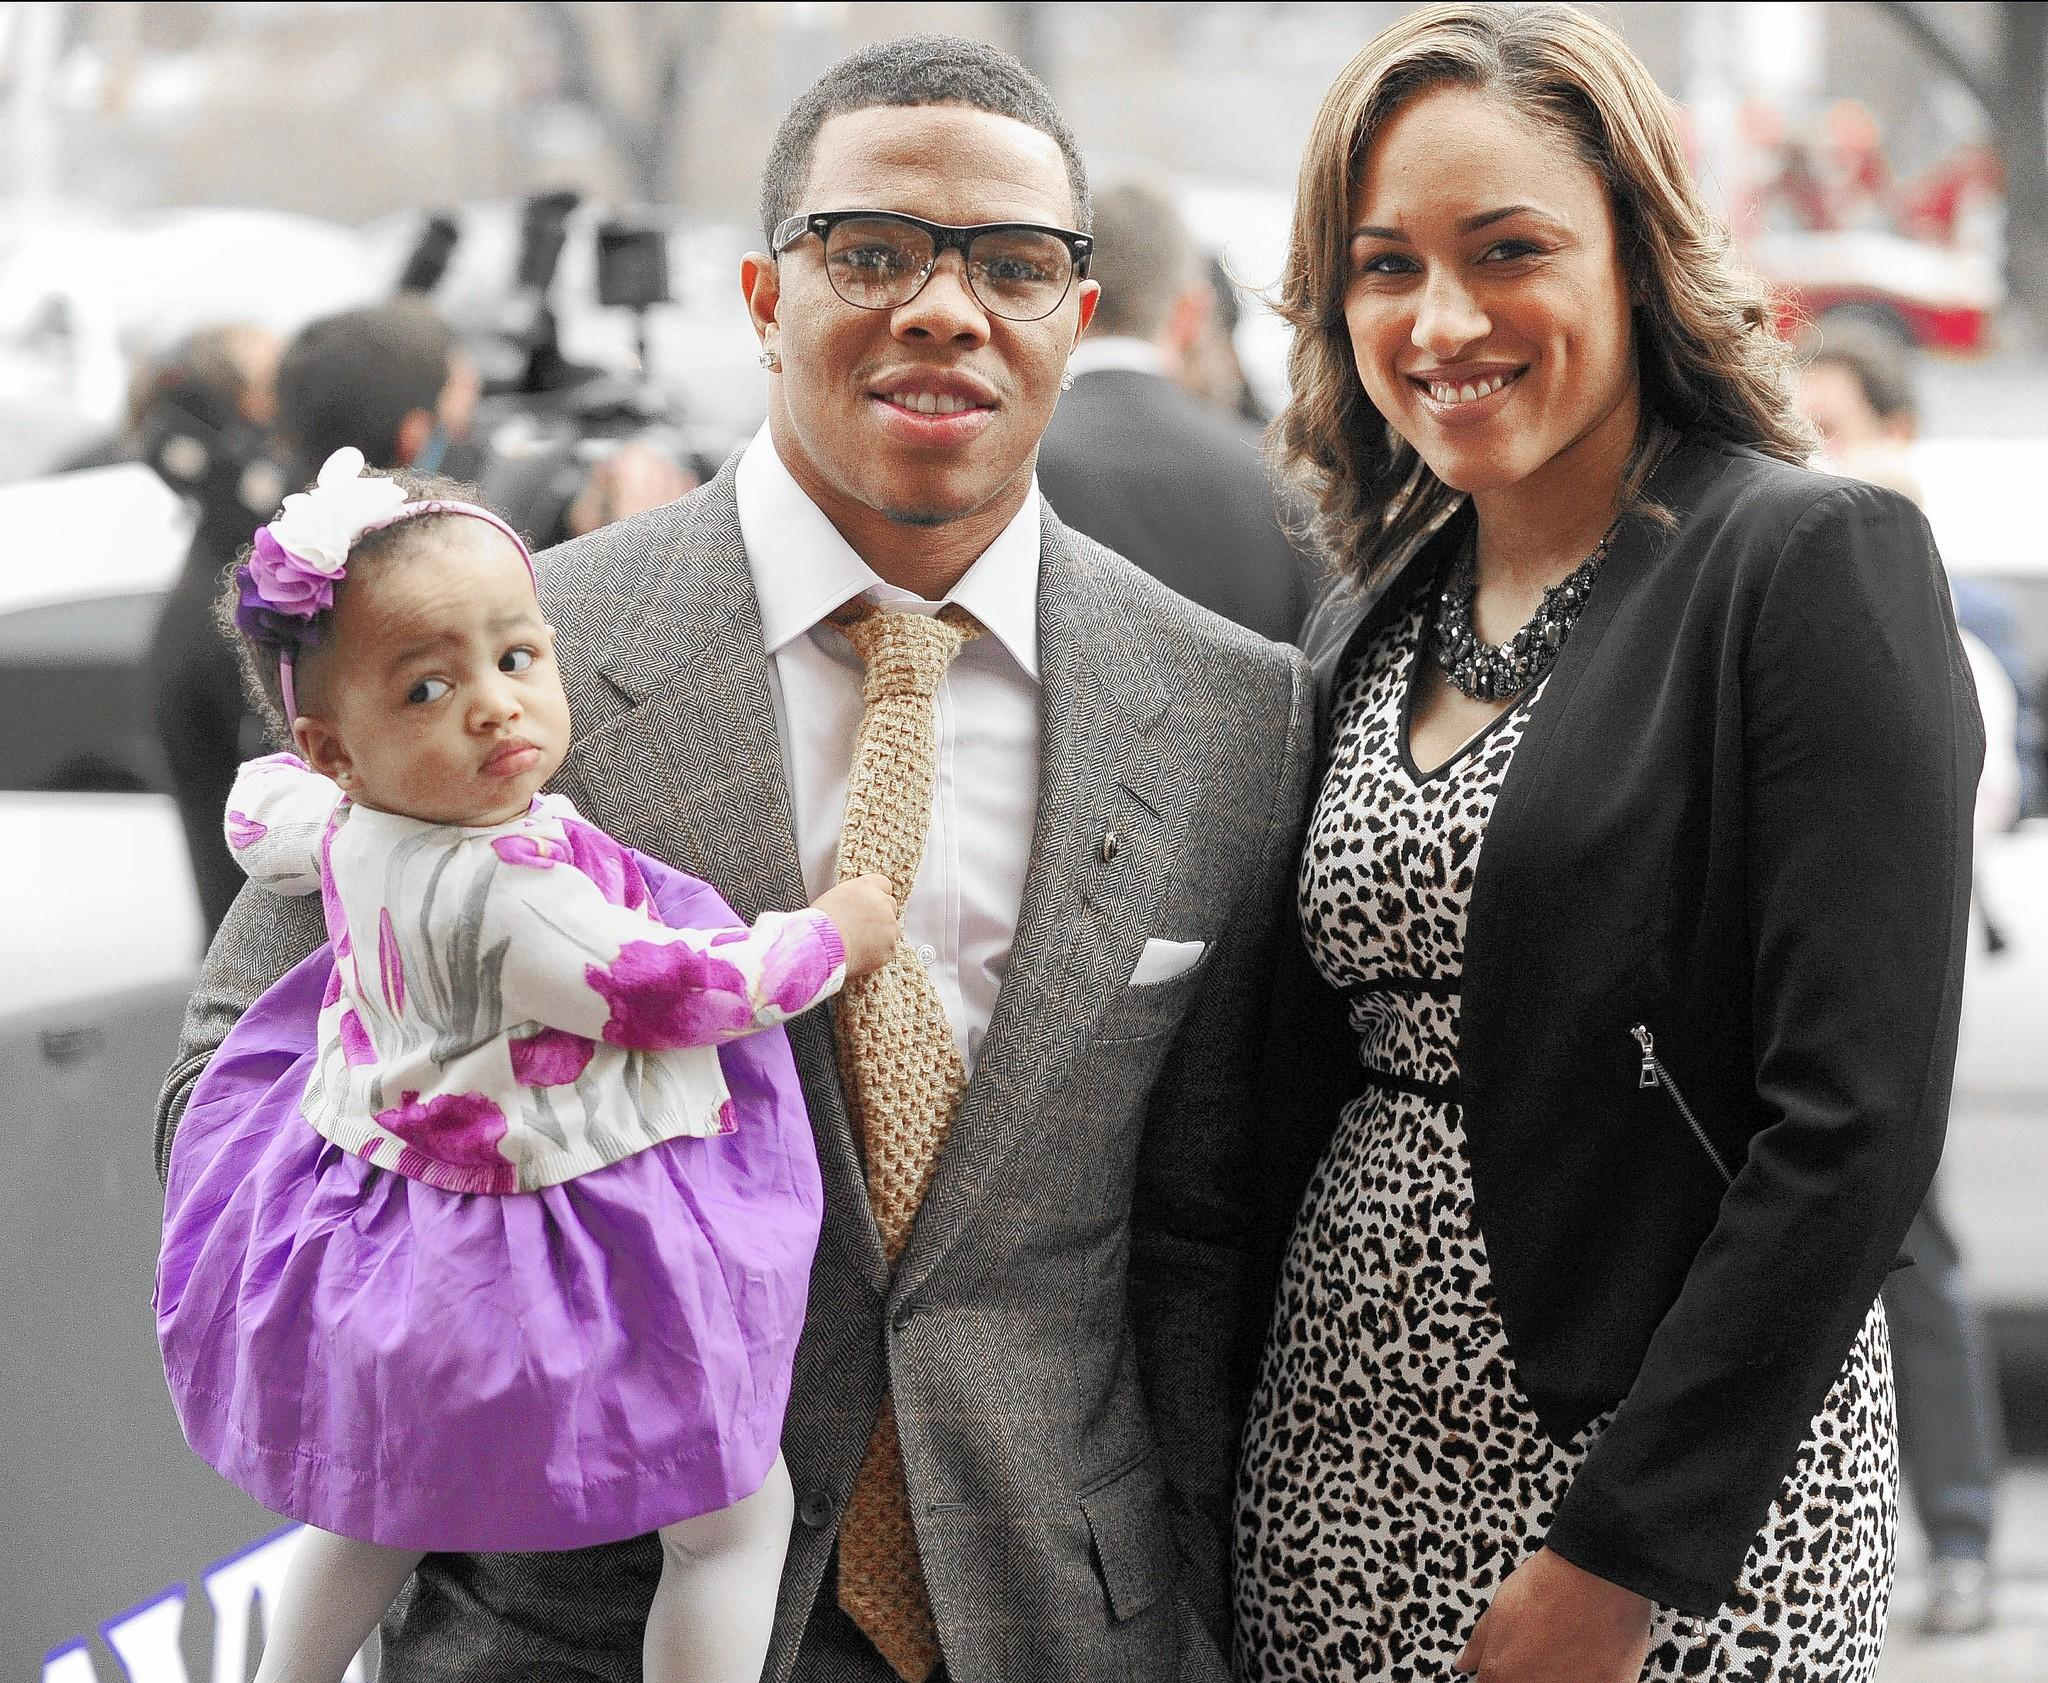 Ray Rice, daughter Rayven and girfrield Janay Palmer attend a team event at the Lyric Opera House in 2013.